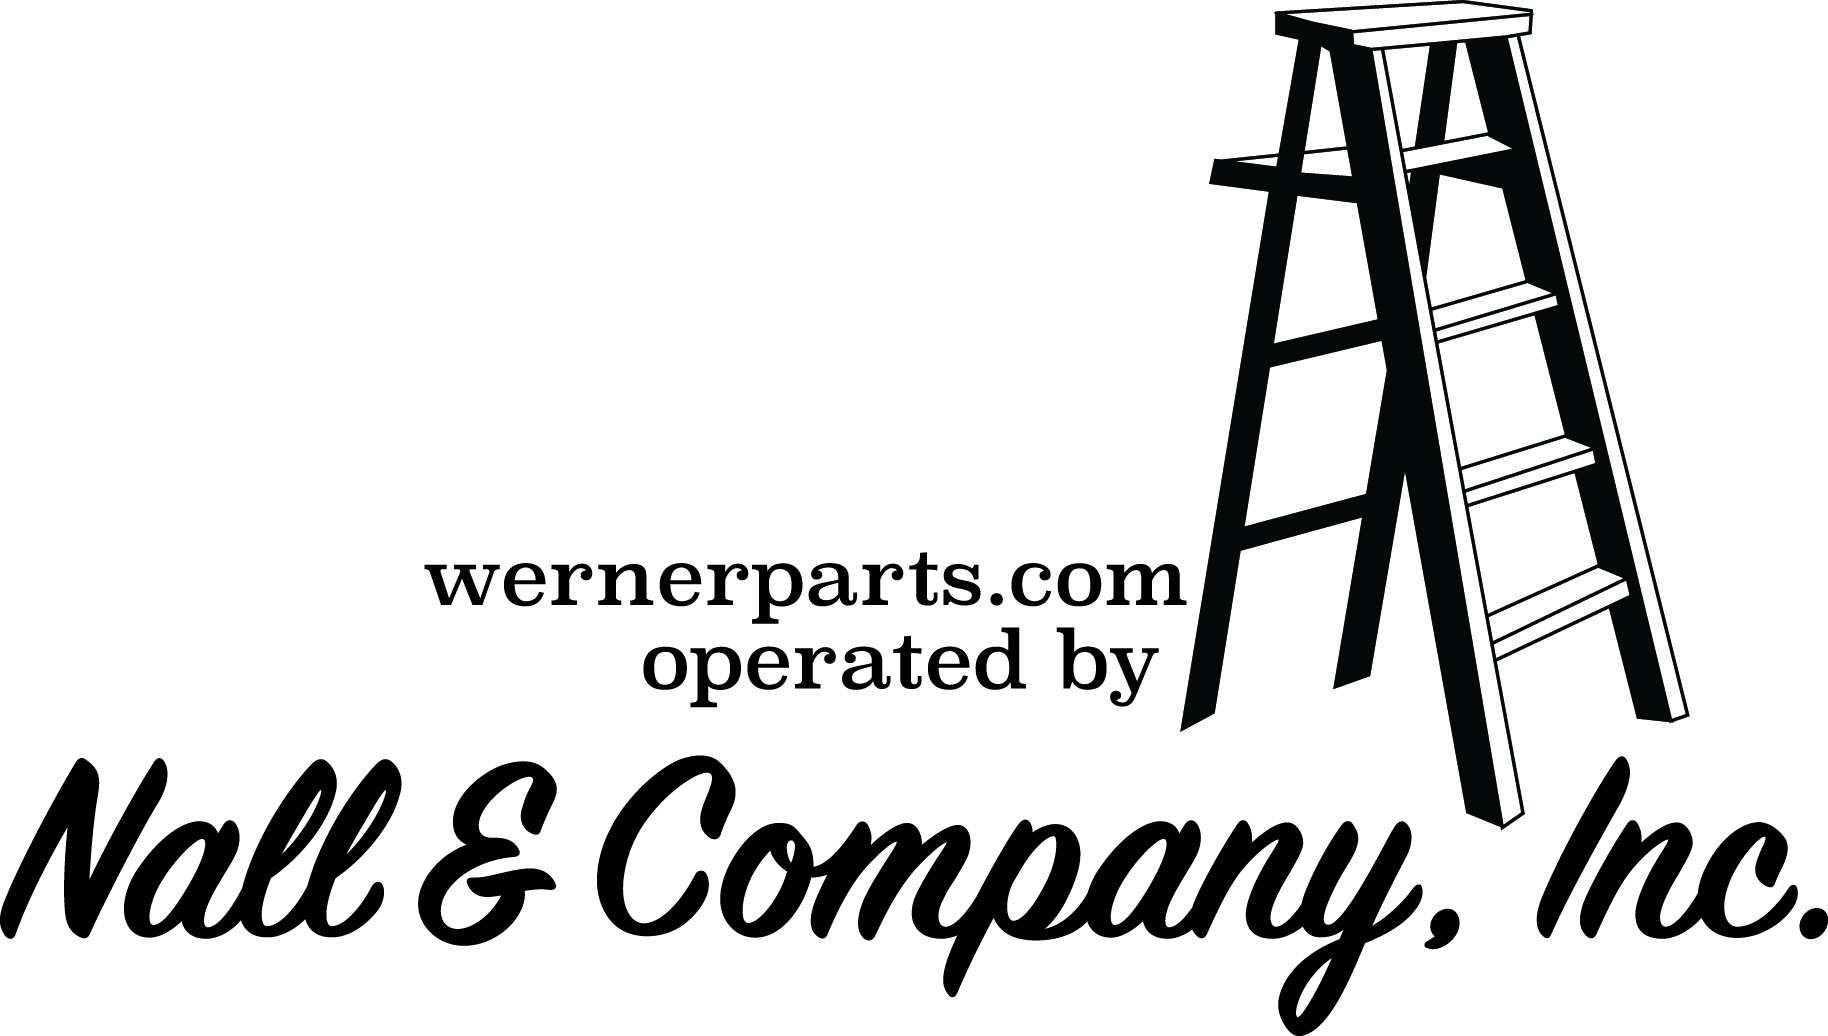 Werner Parts operated by Nall & Company, Inc.